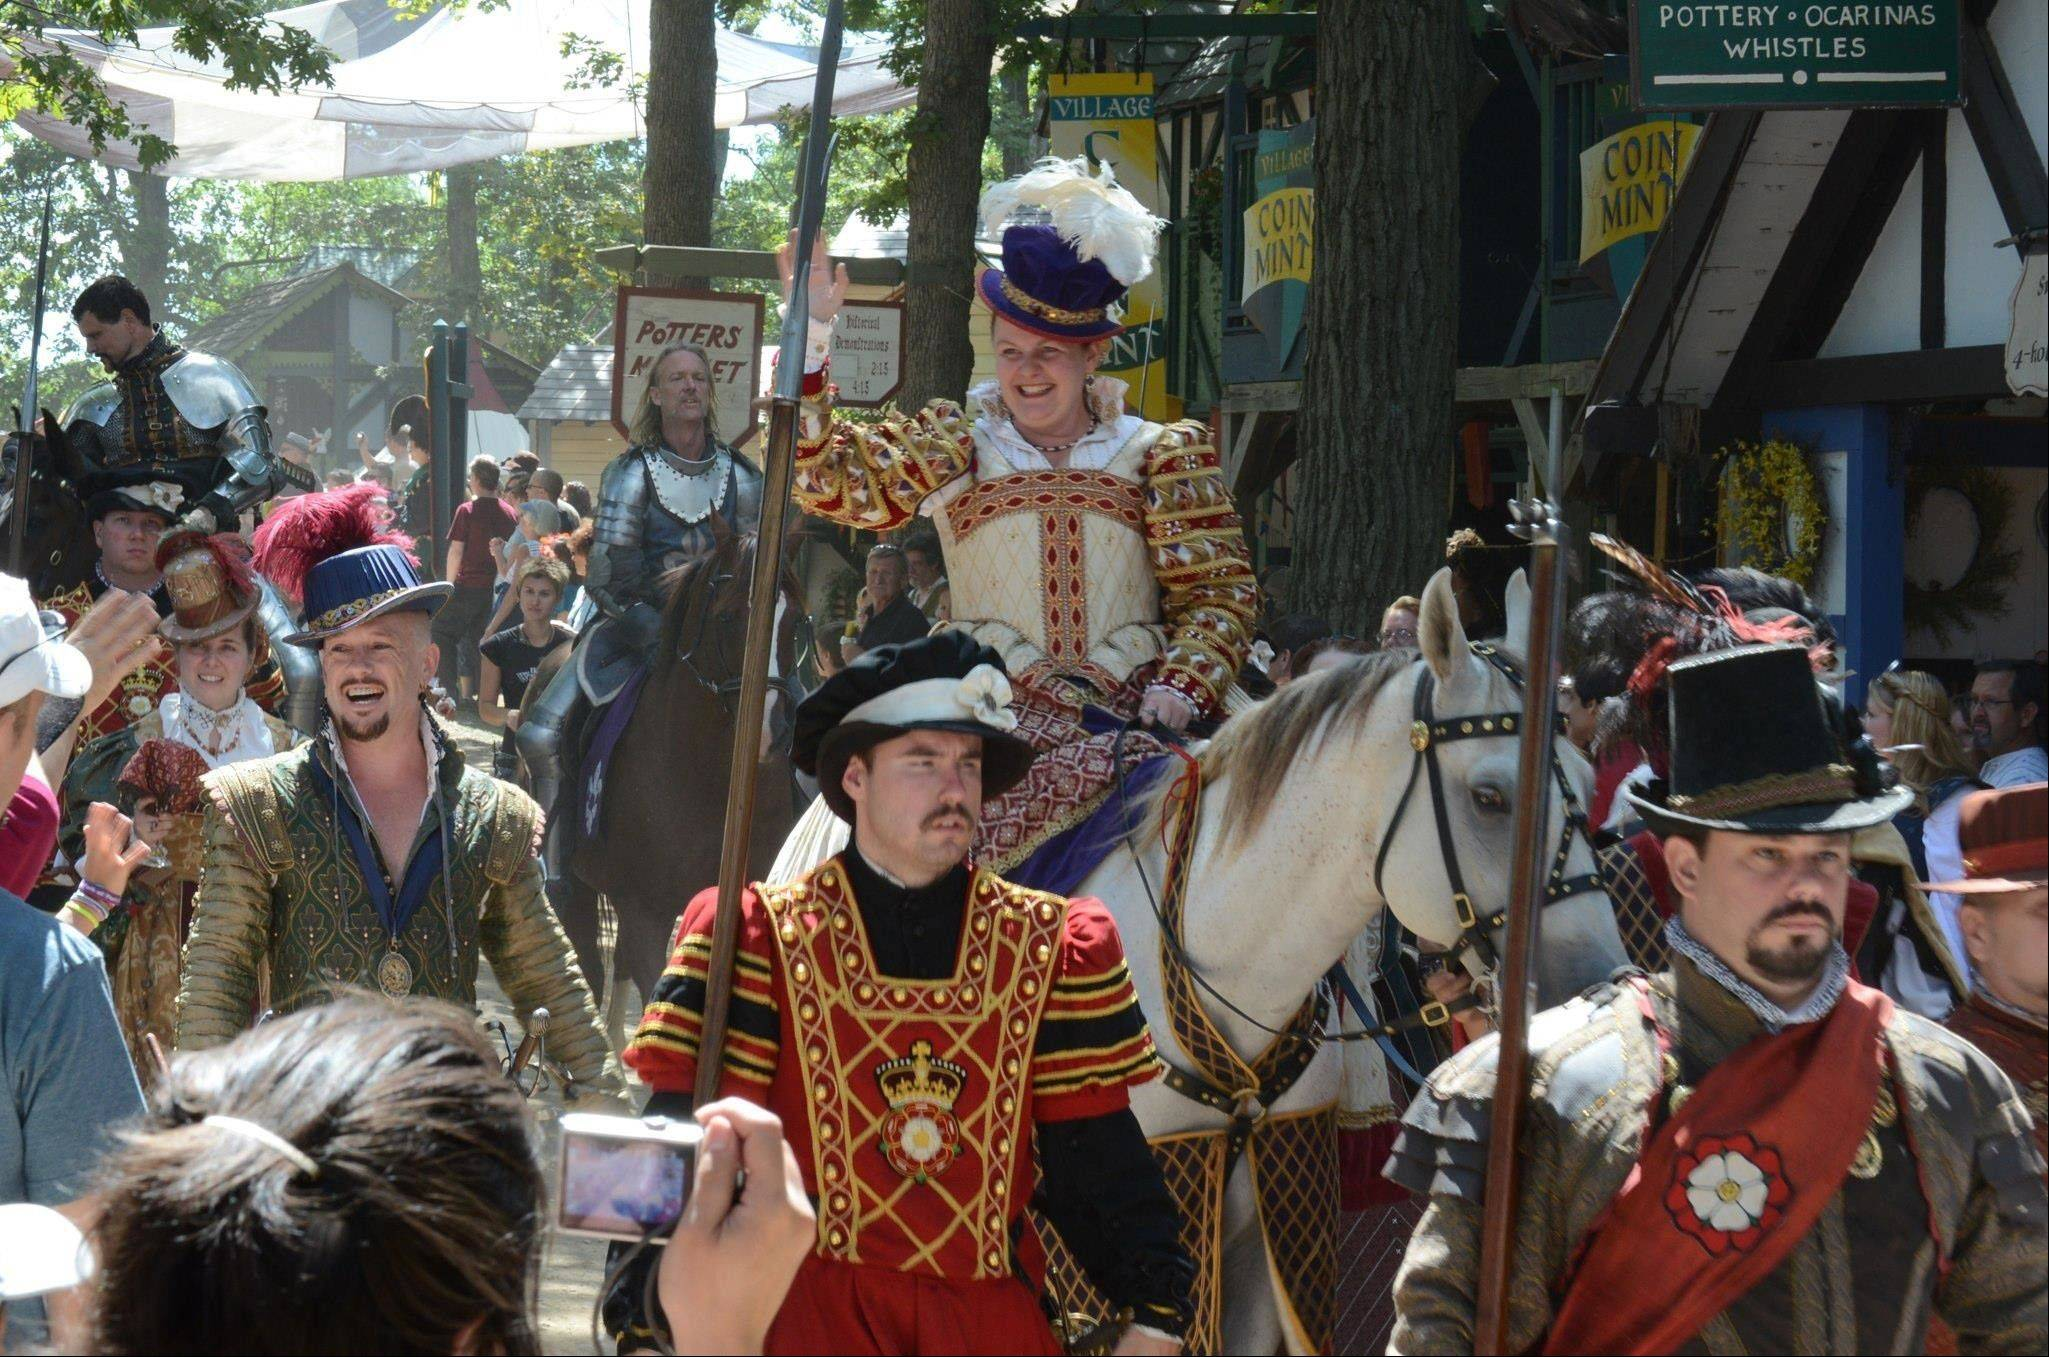 The queen greets the crowds during a parade at the Bristol Renaissance Faire.